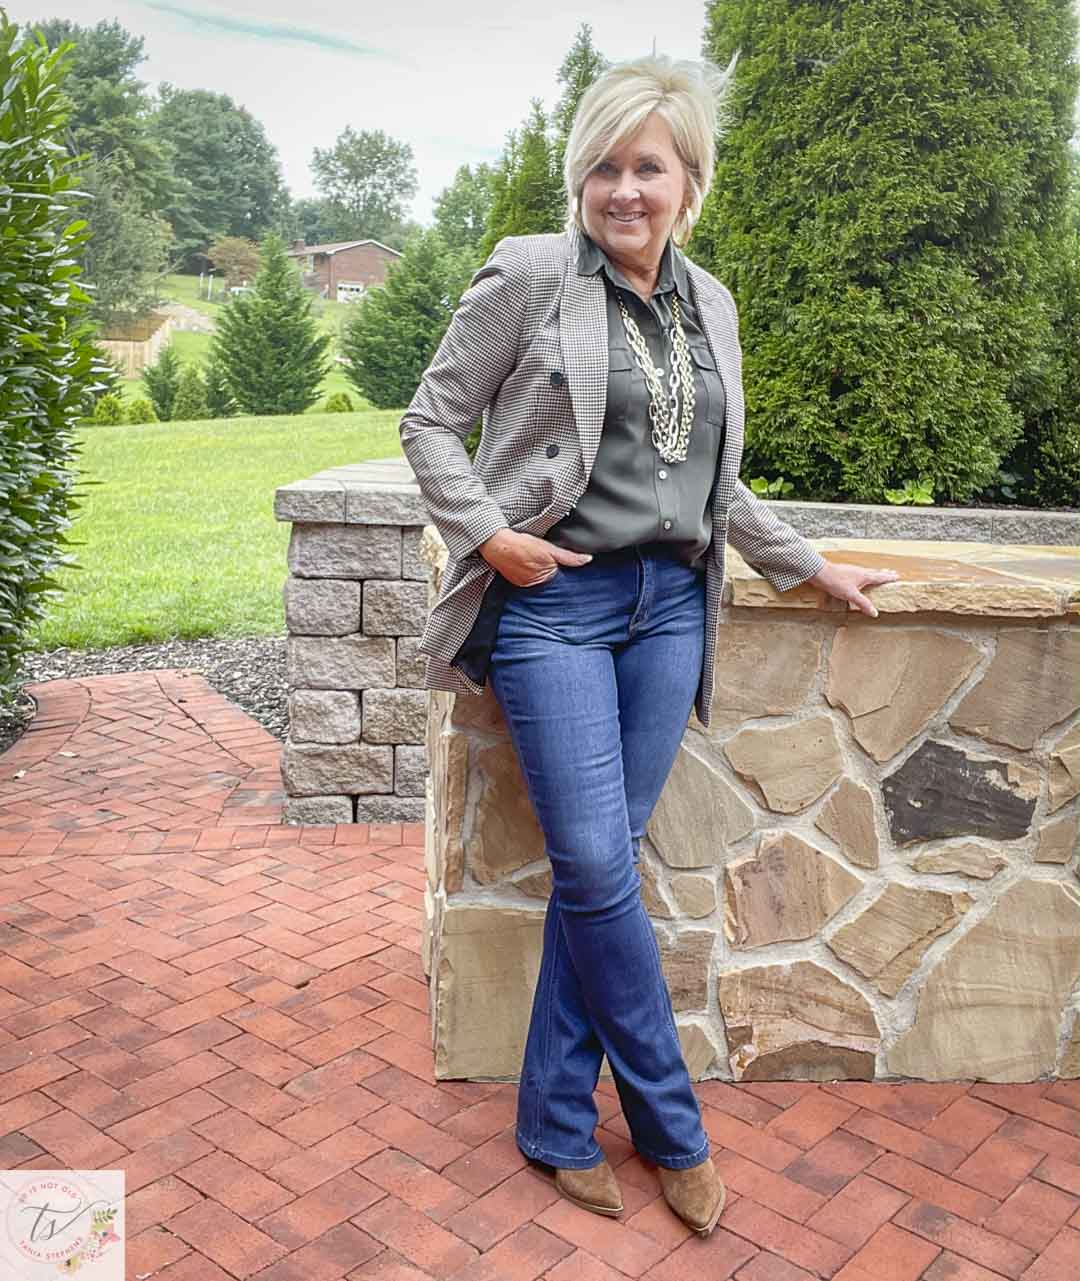 Over 40 Fashion Blogger, Tania Stephens, is wearing a plaid blazer with an olive button-up shirt, bootcut jeans, and suede ankle boots